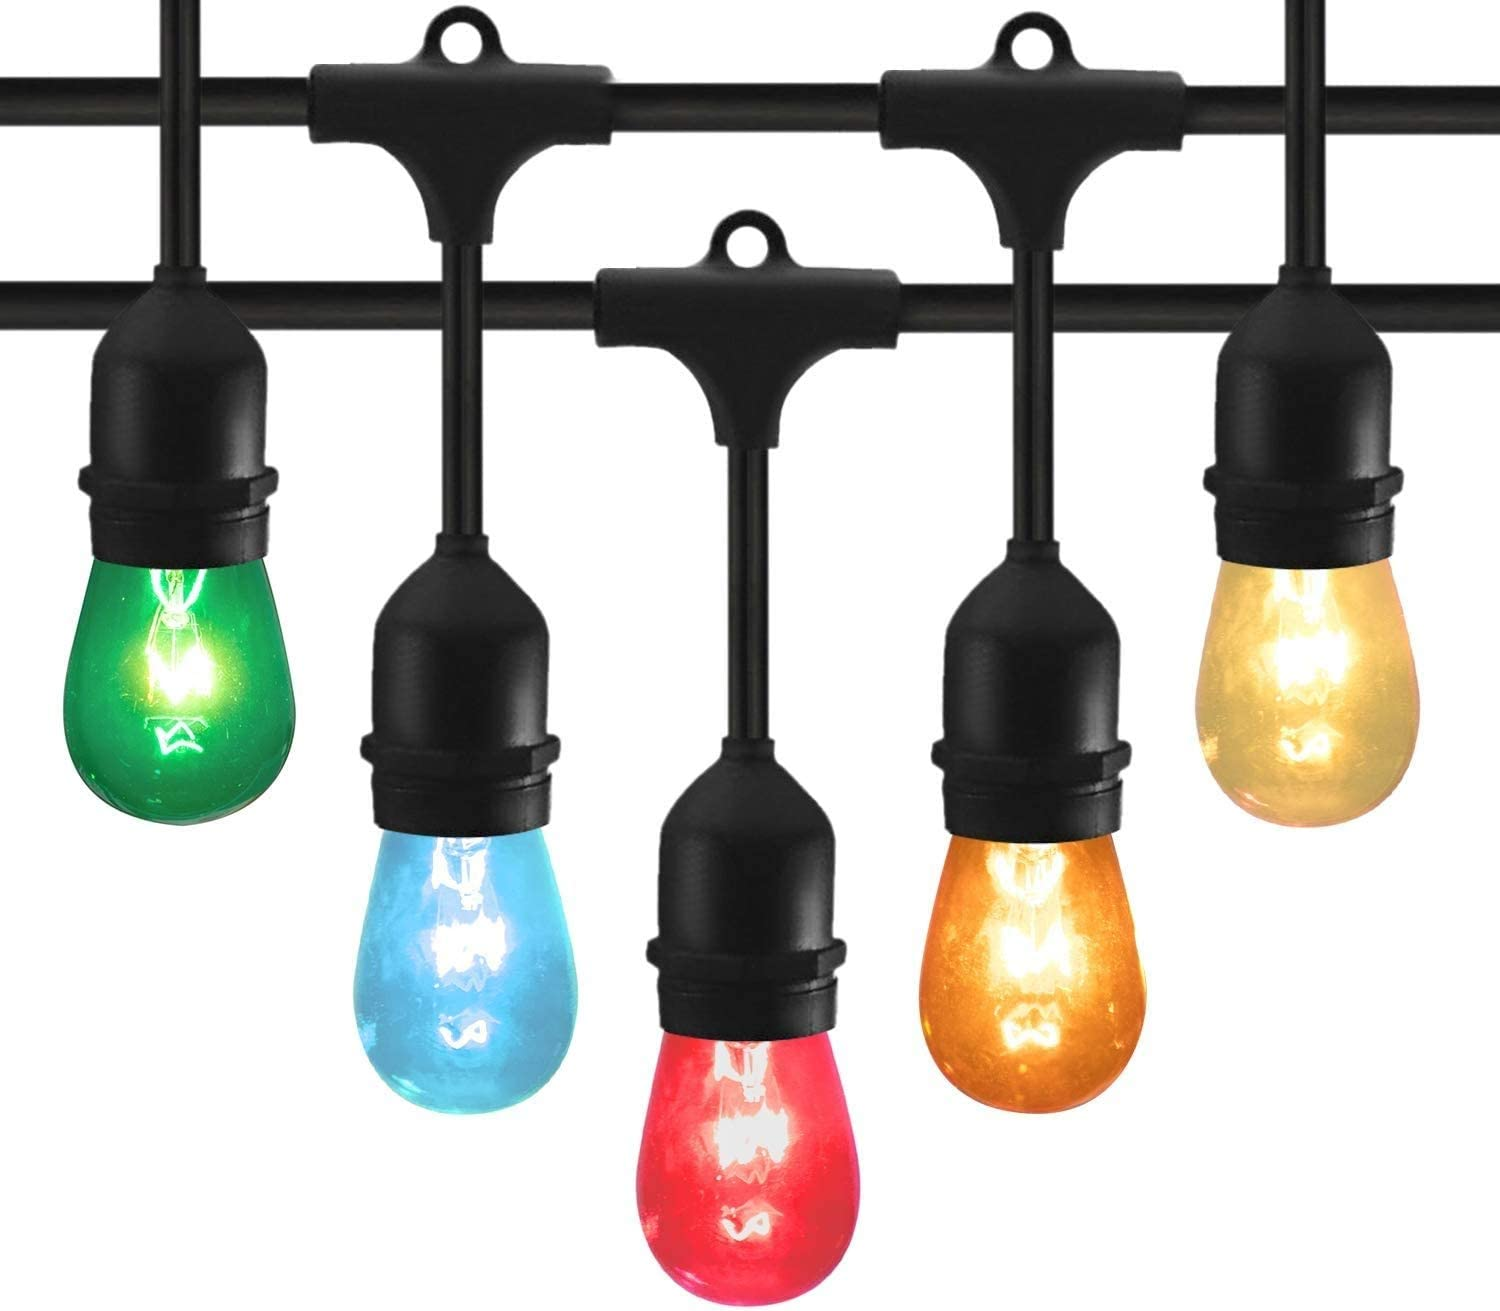 48 Feet Outdoor Today's only String Lights with and Ed Hanging Sockets 15 S14 Online limited product